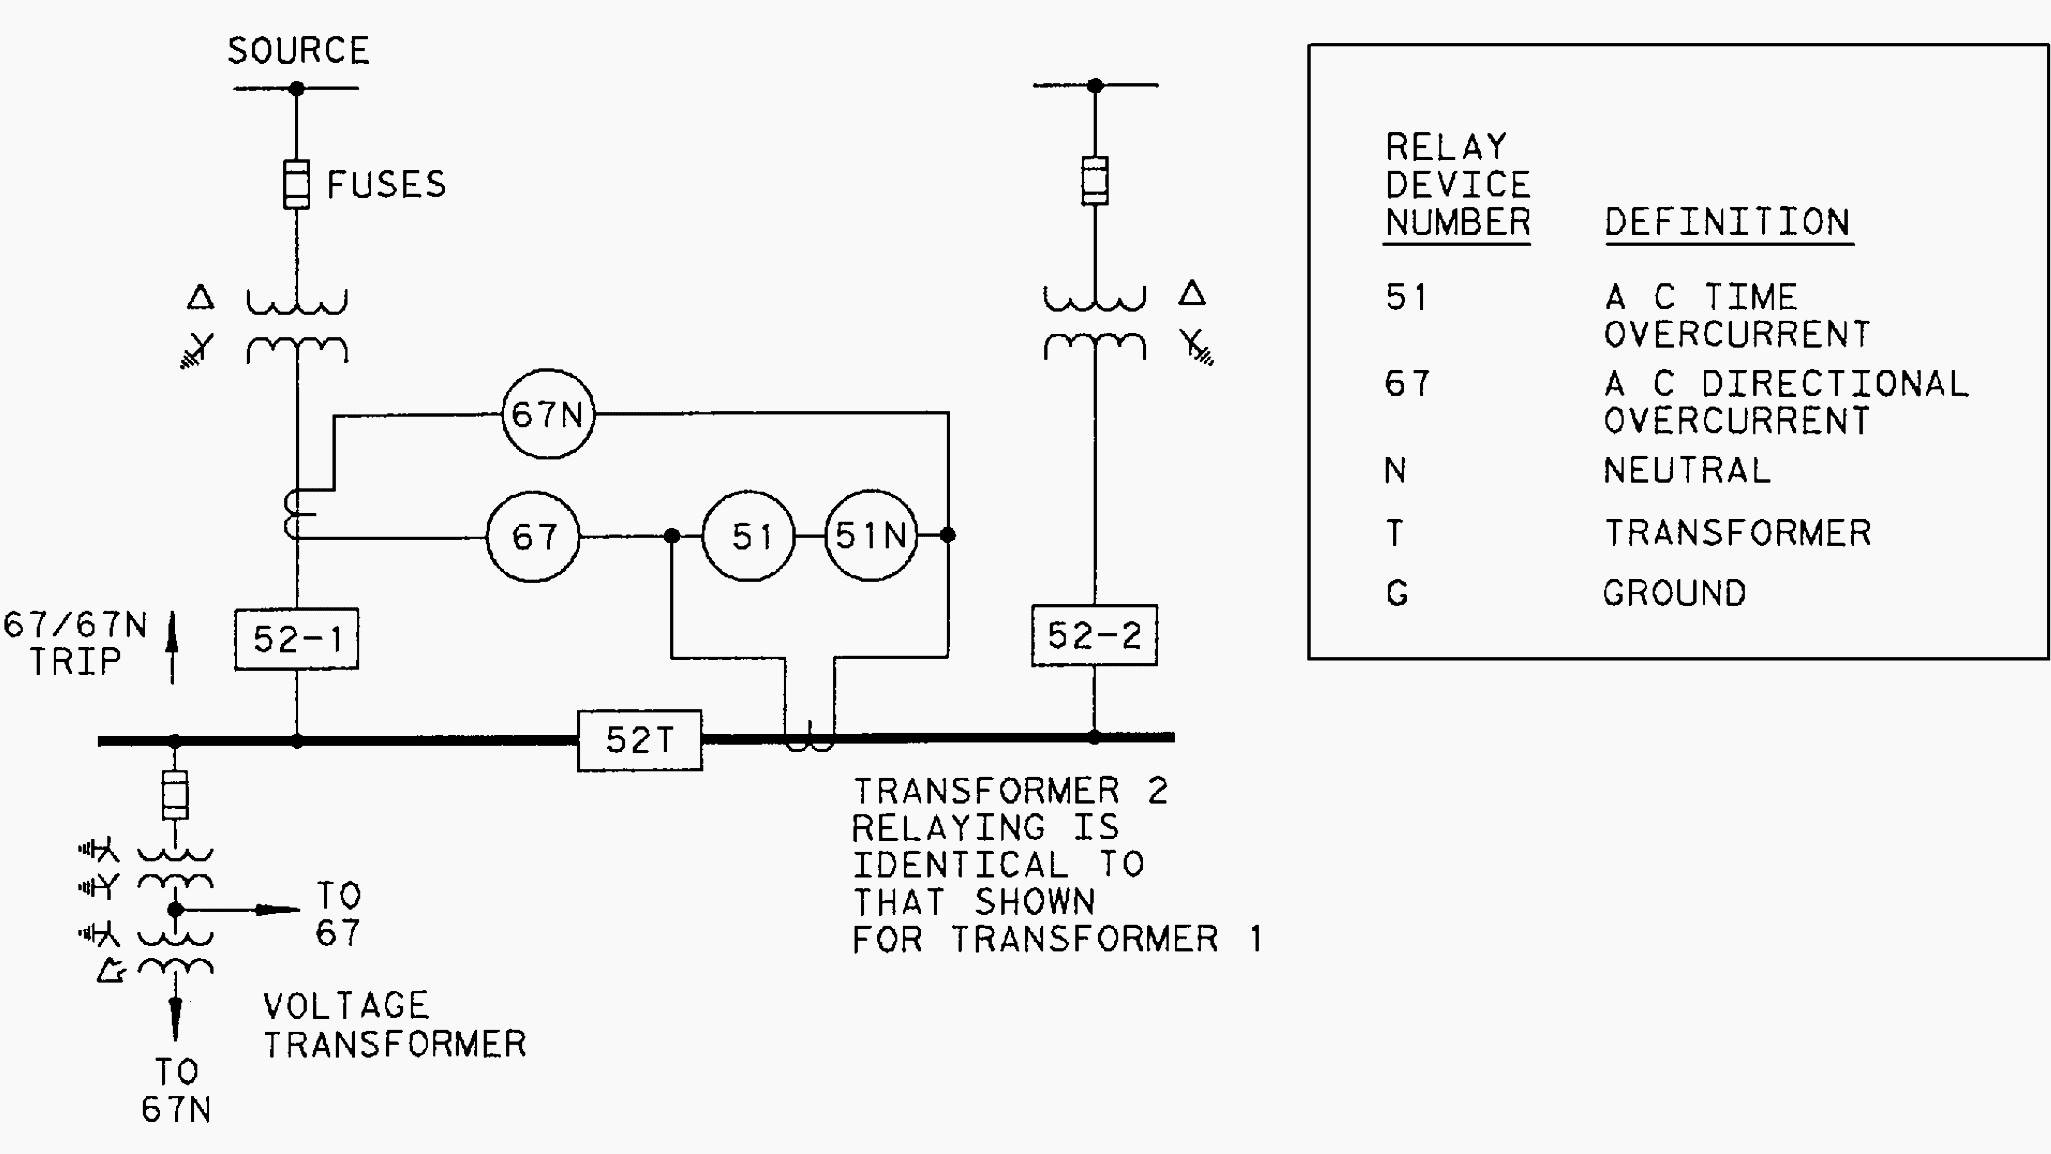 Paralleled transformer protection with primary fuses (no load or metering circuits shown)